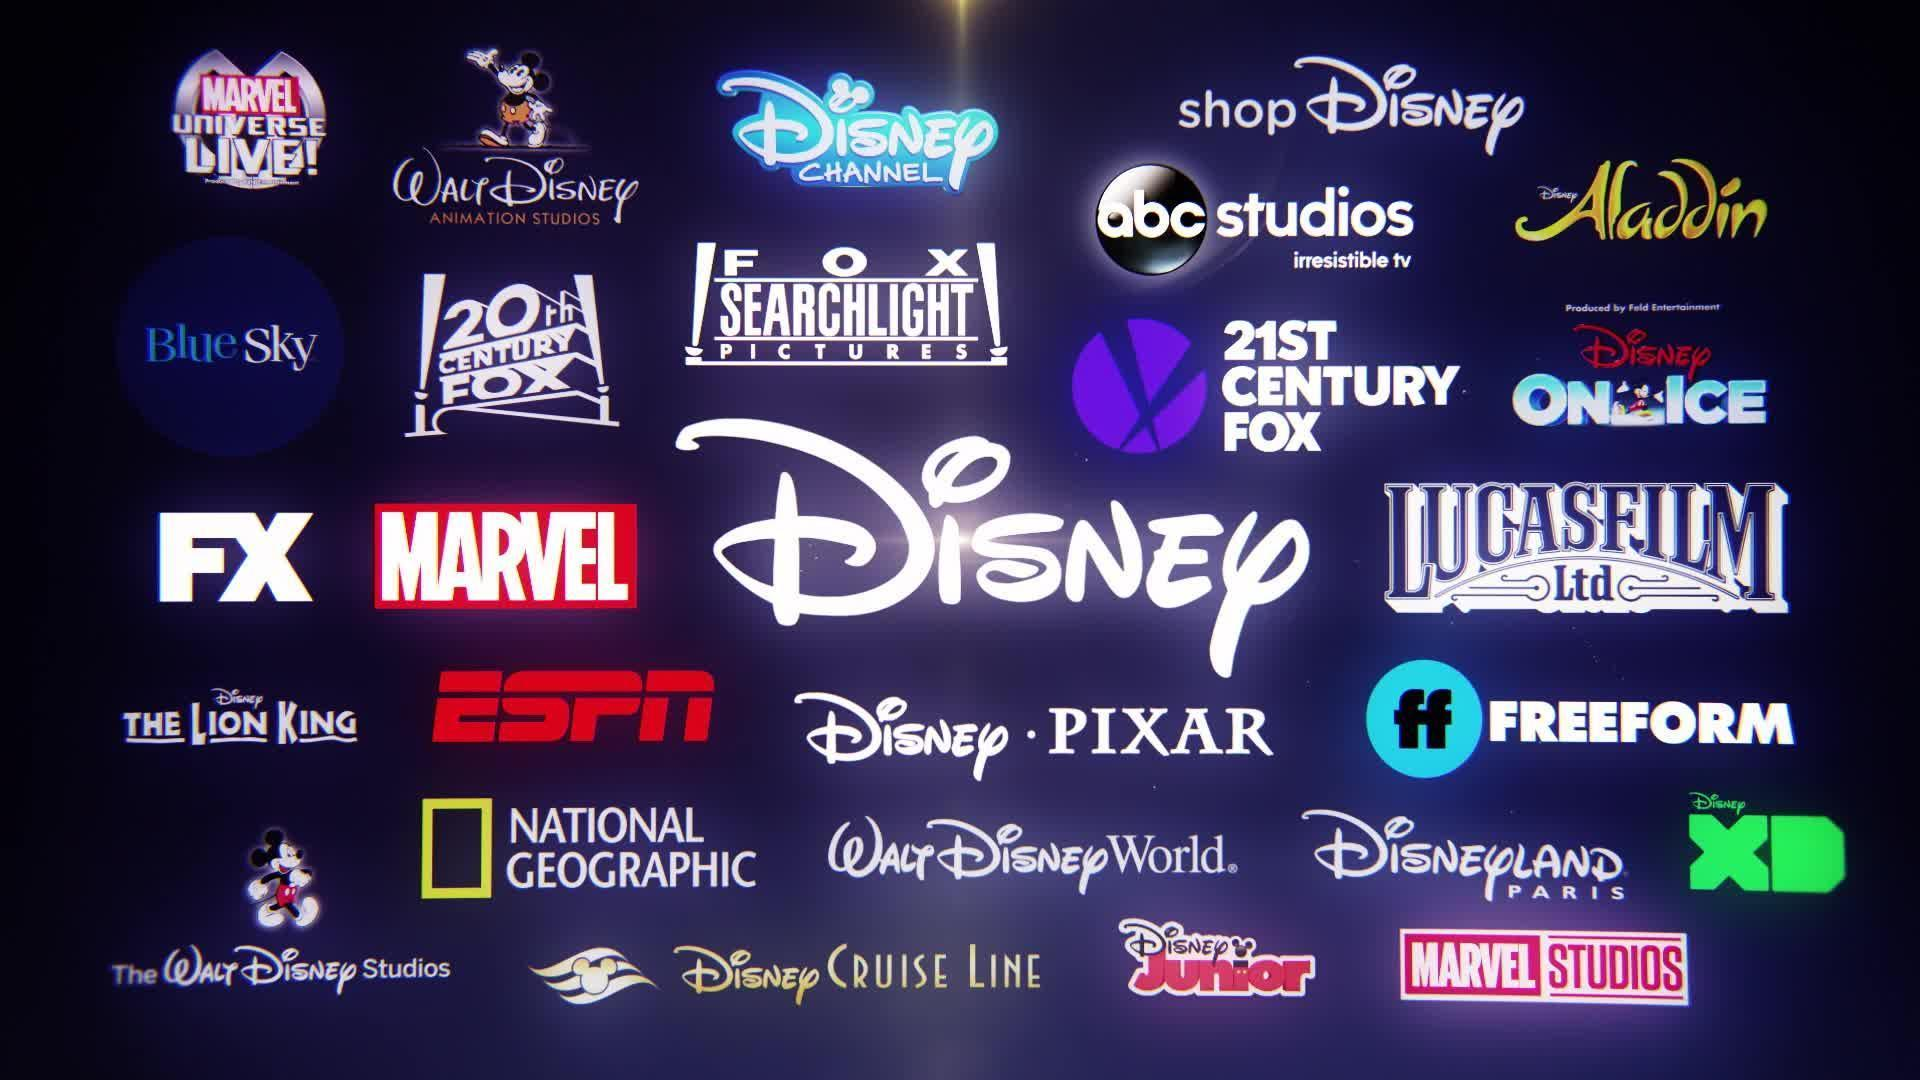 About Us - The Walt Disney Family of Companies Video (FR)